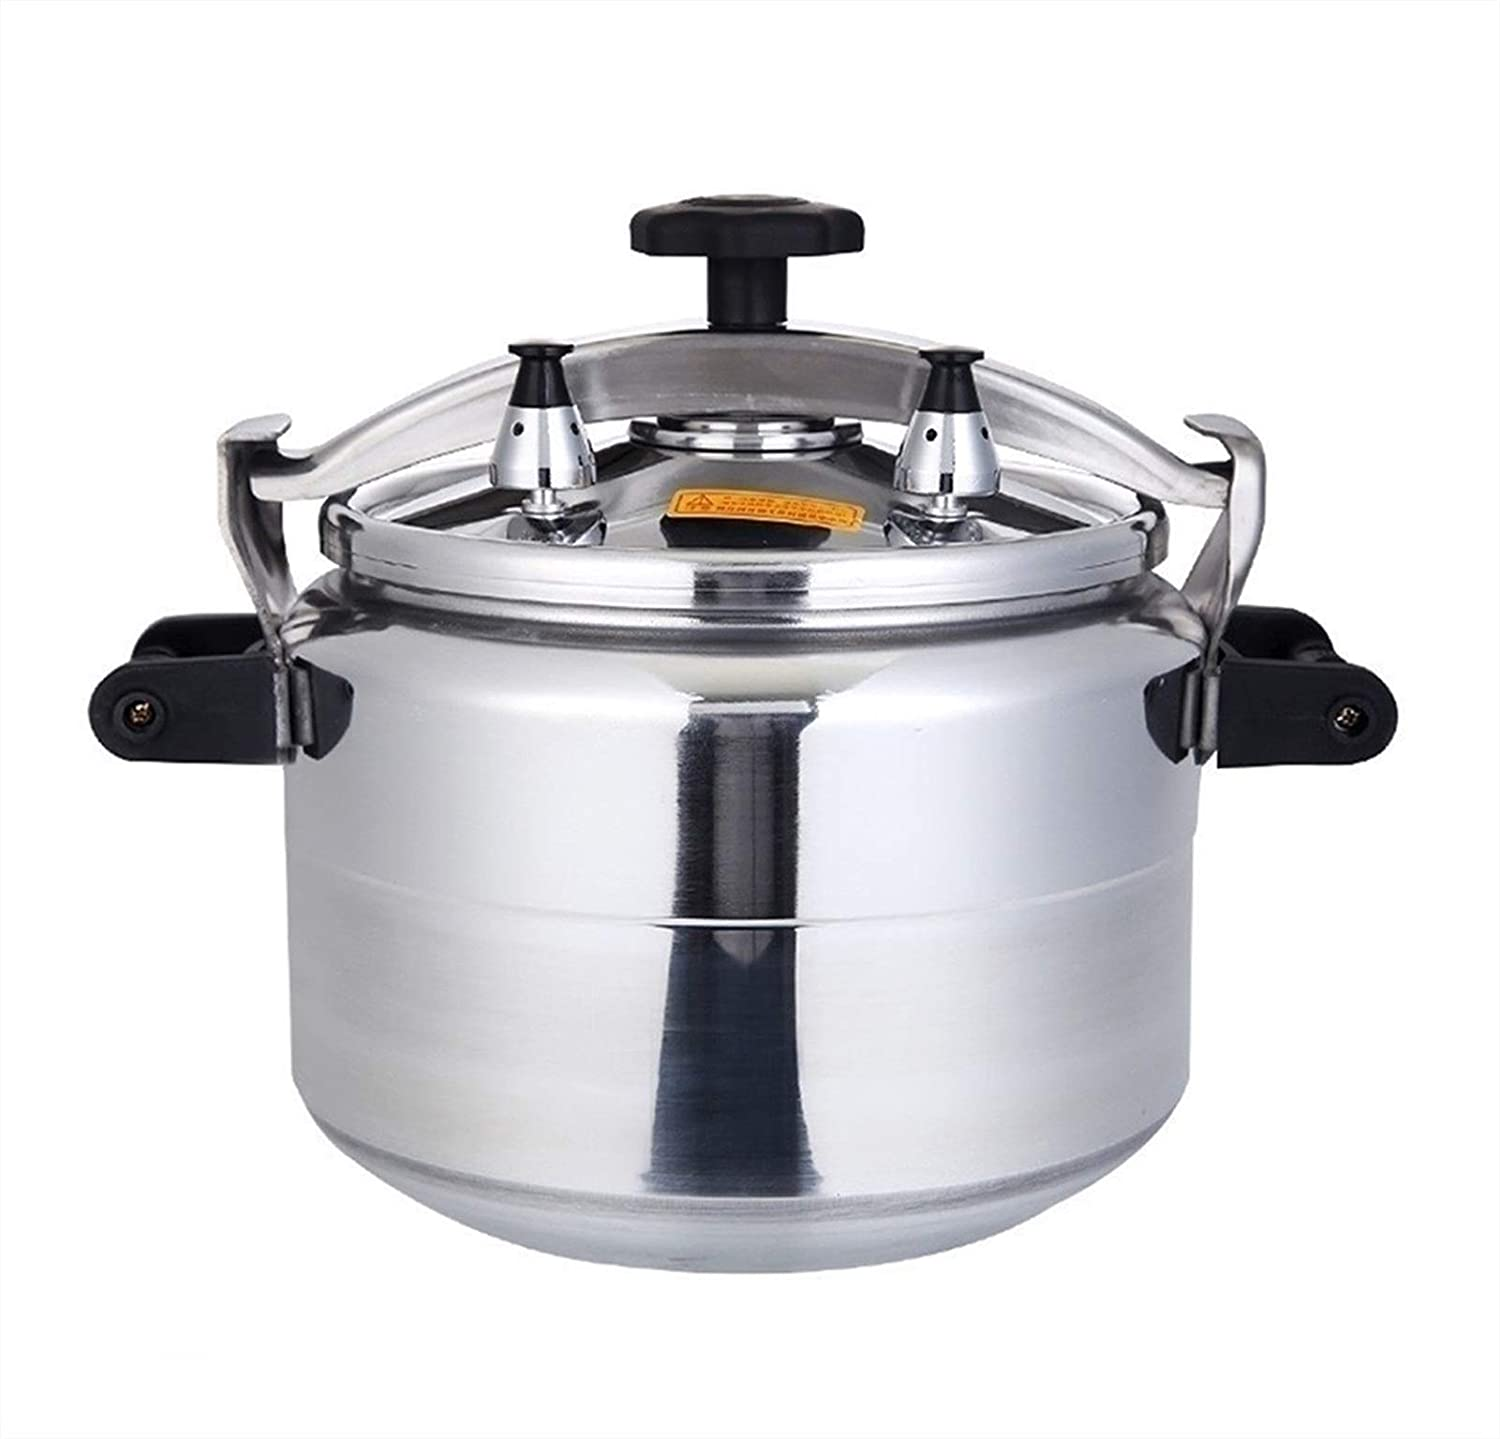 15-70 Quart Pressure Cooker, Gas Pressure Cooker Safety Aluminum Alloy Large Capacity High Pressure Cooker Commercial Aluminum Pressure Cooker, Hotel, Restaurant Gas Stove Special Pot slow cooker